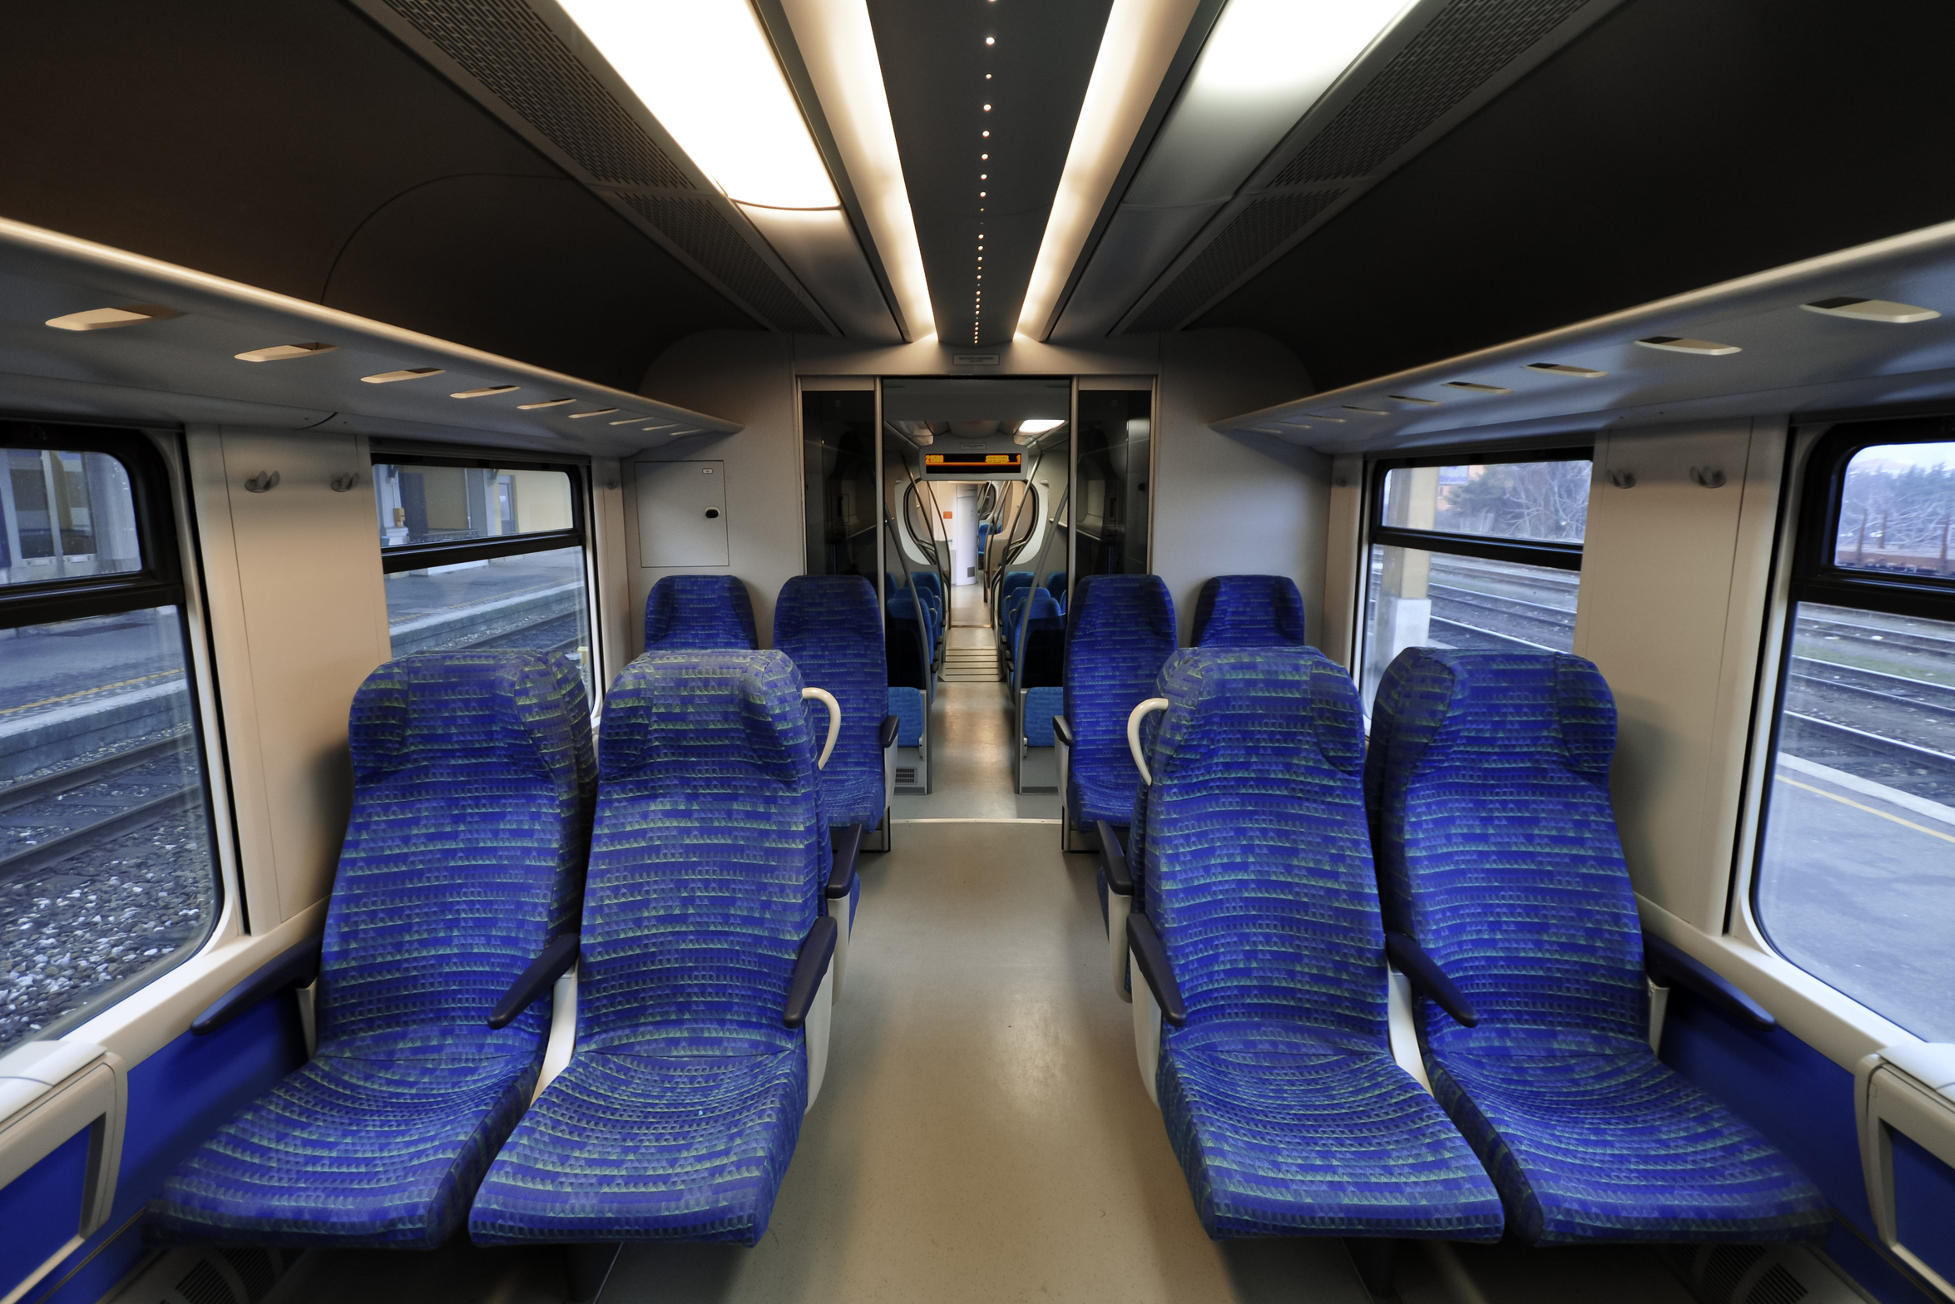 Vacant seats inside an empty passenger train